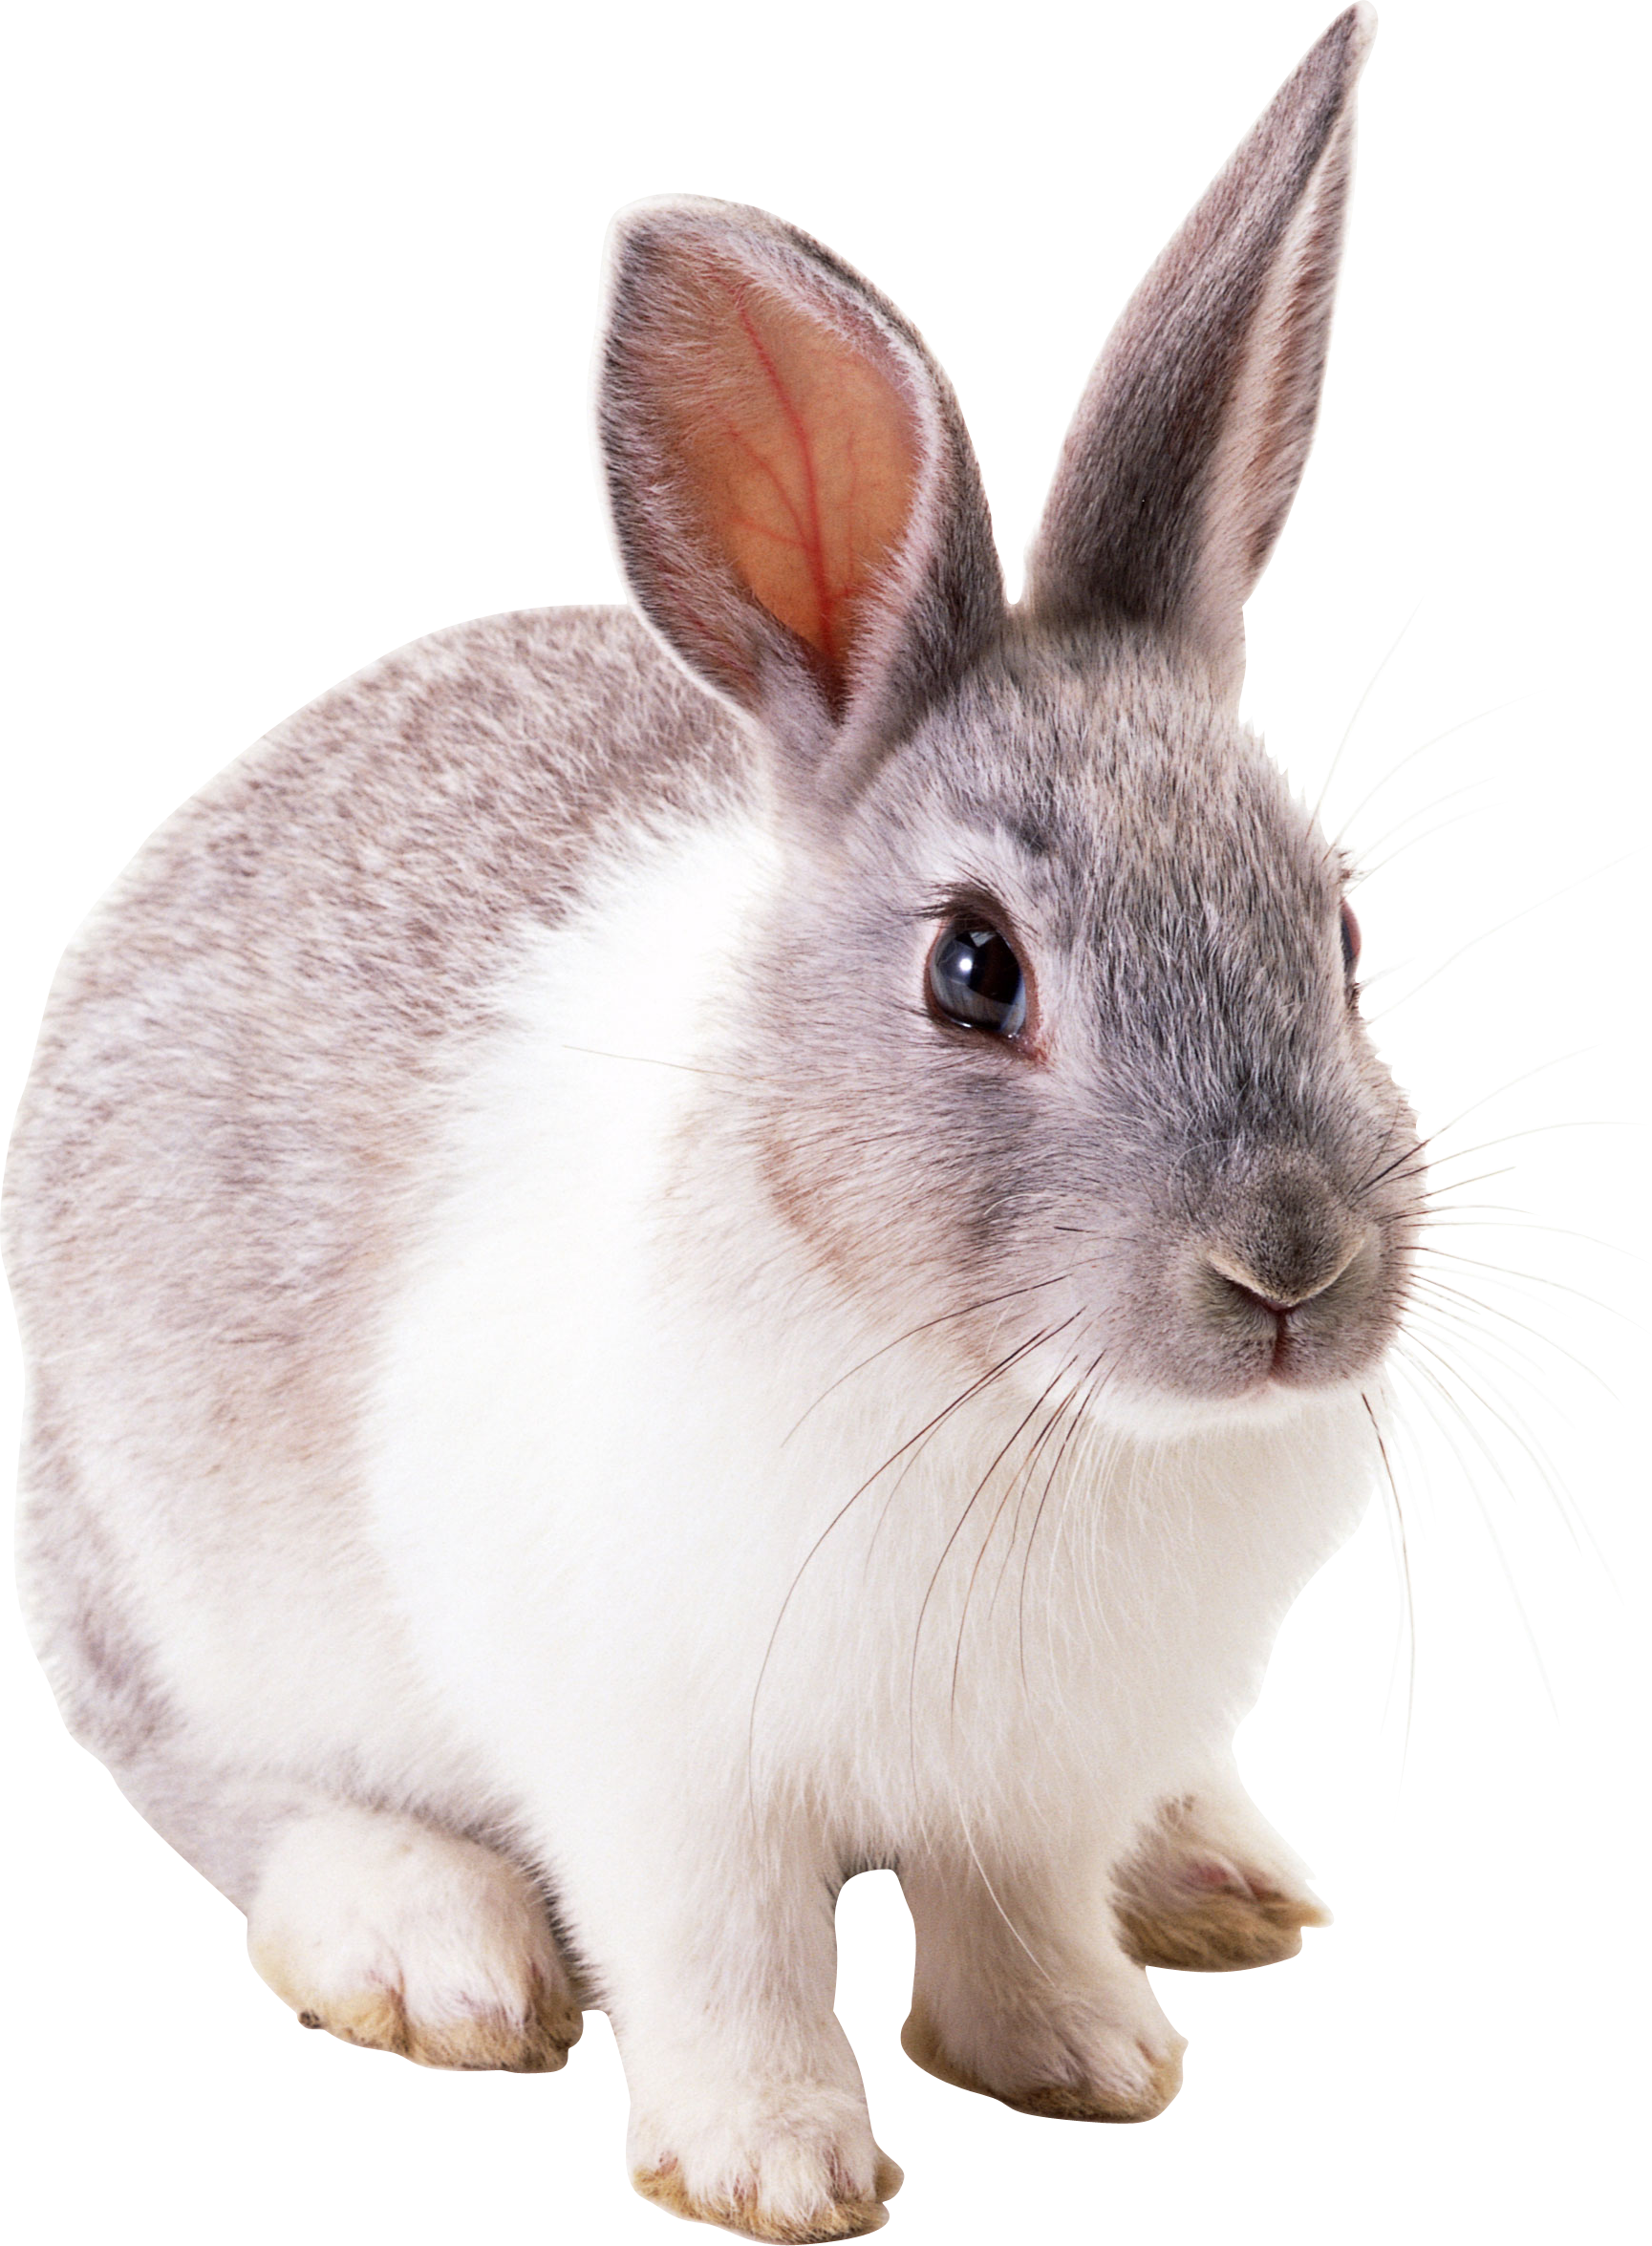 Transparent Background Rabbit image #40340